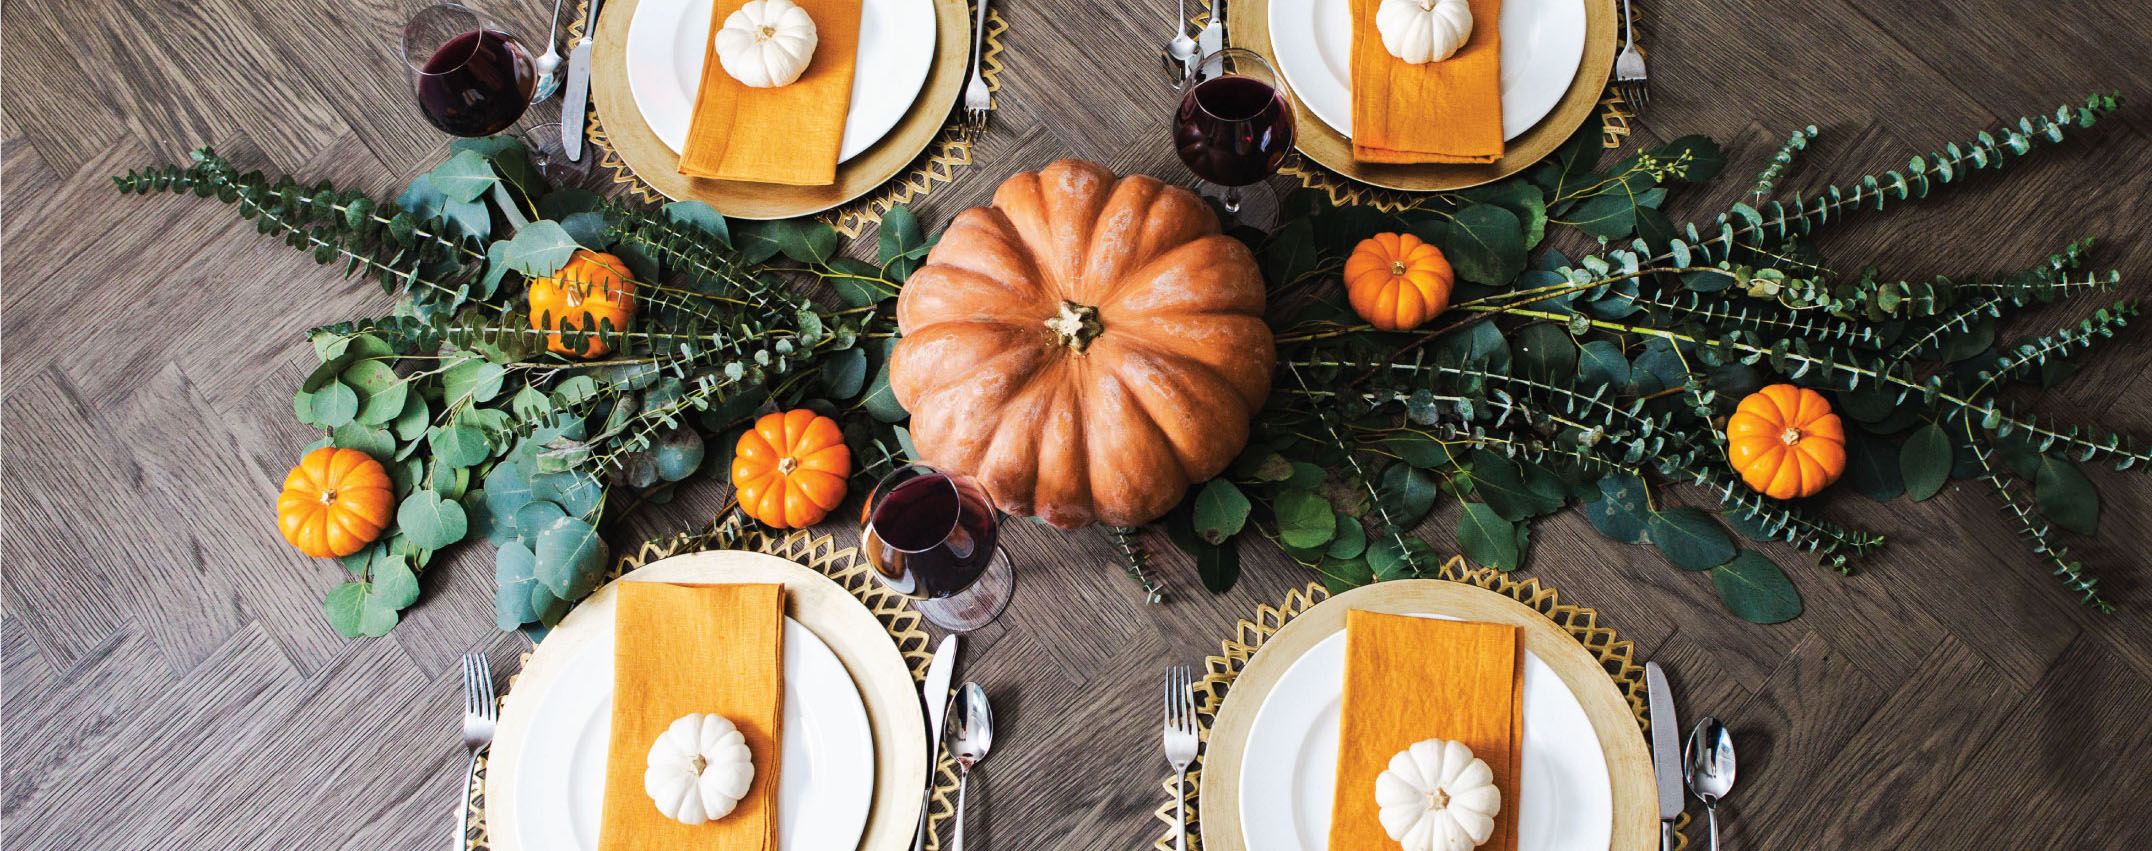 Tips for Hosting a Perfect Friendsgiving